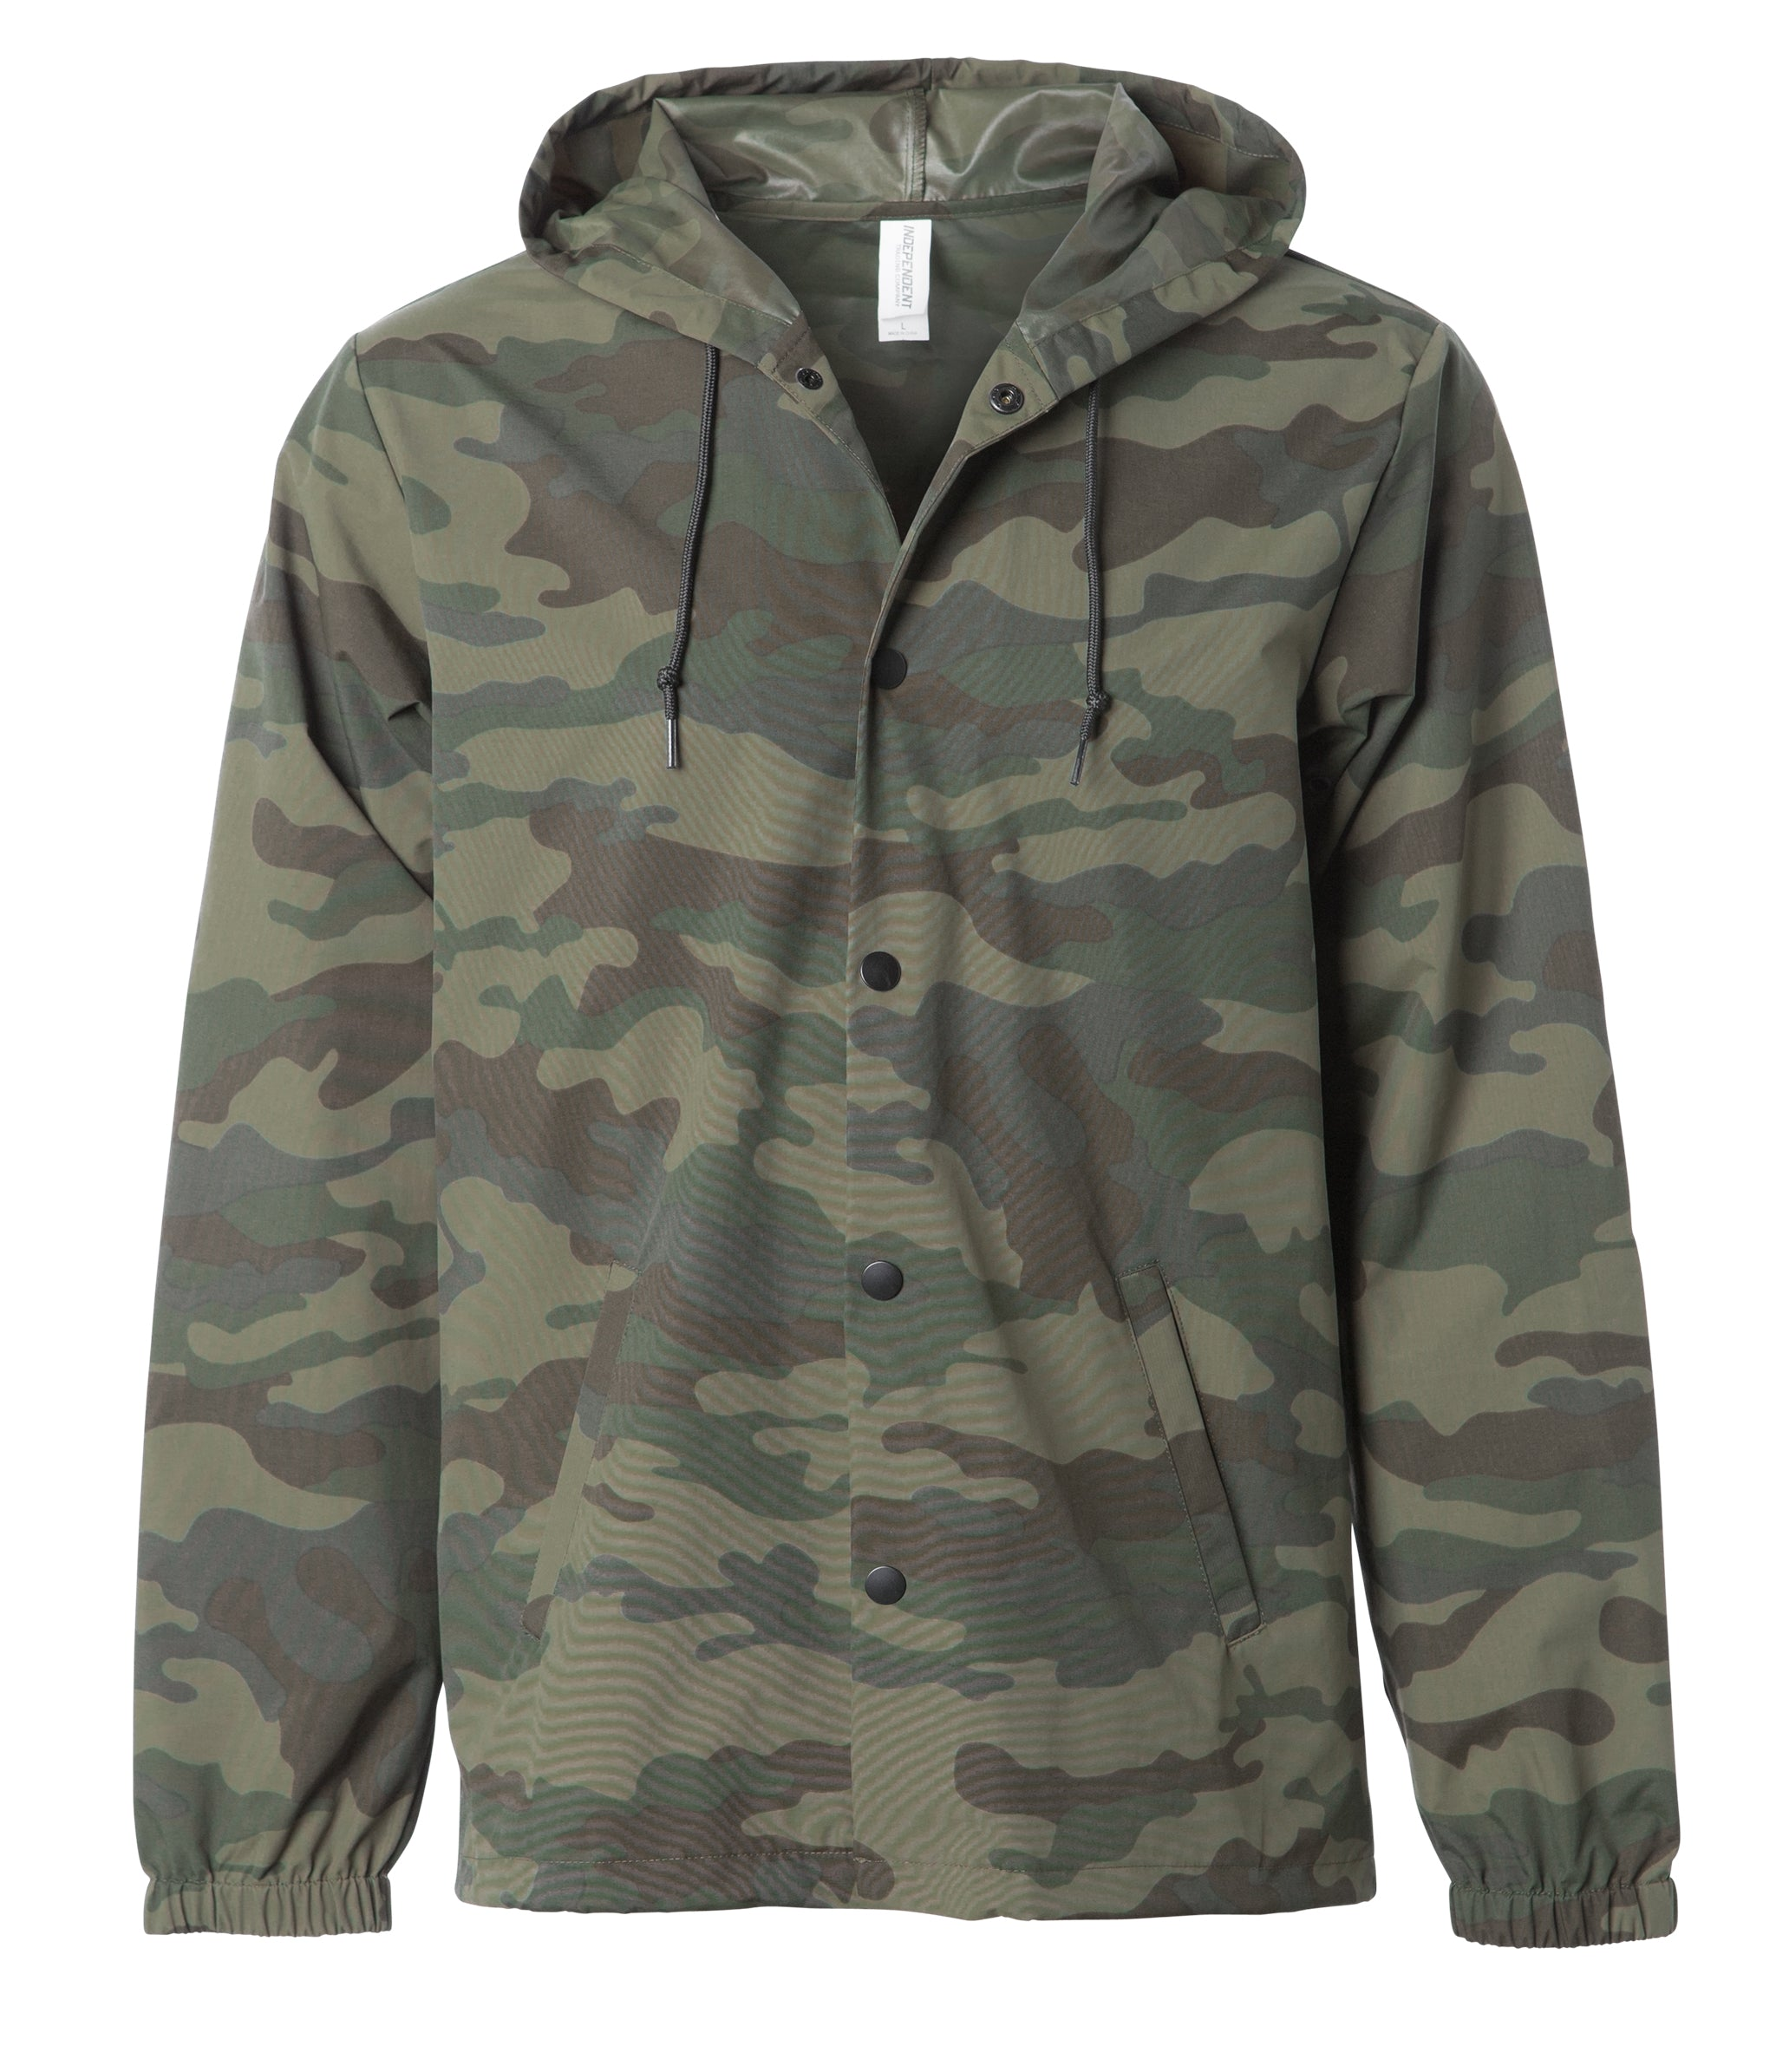 6cffee2db9 Hooded Water Resistant Windbreaker Jacket